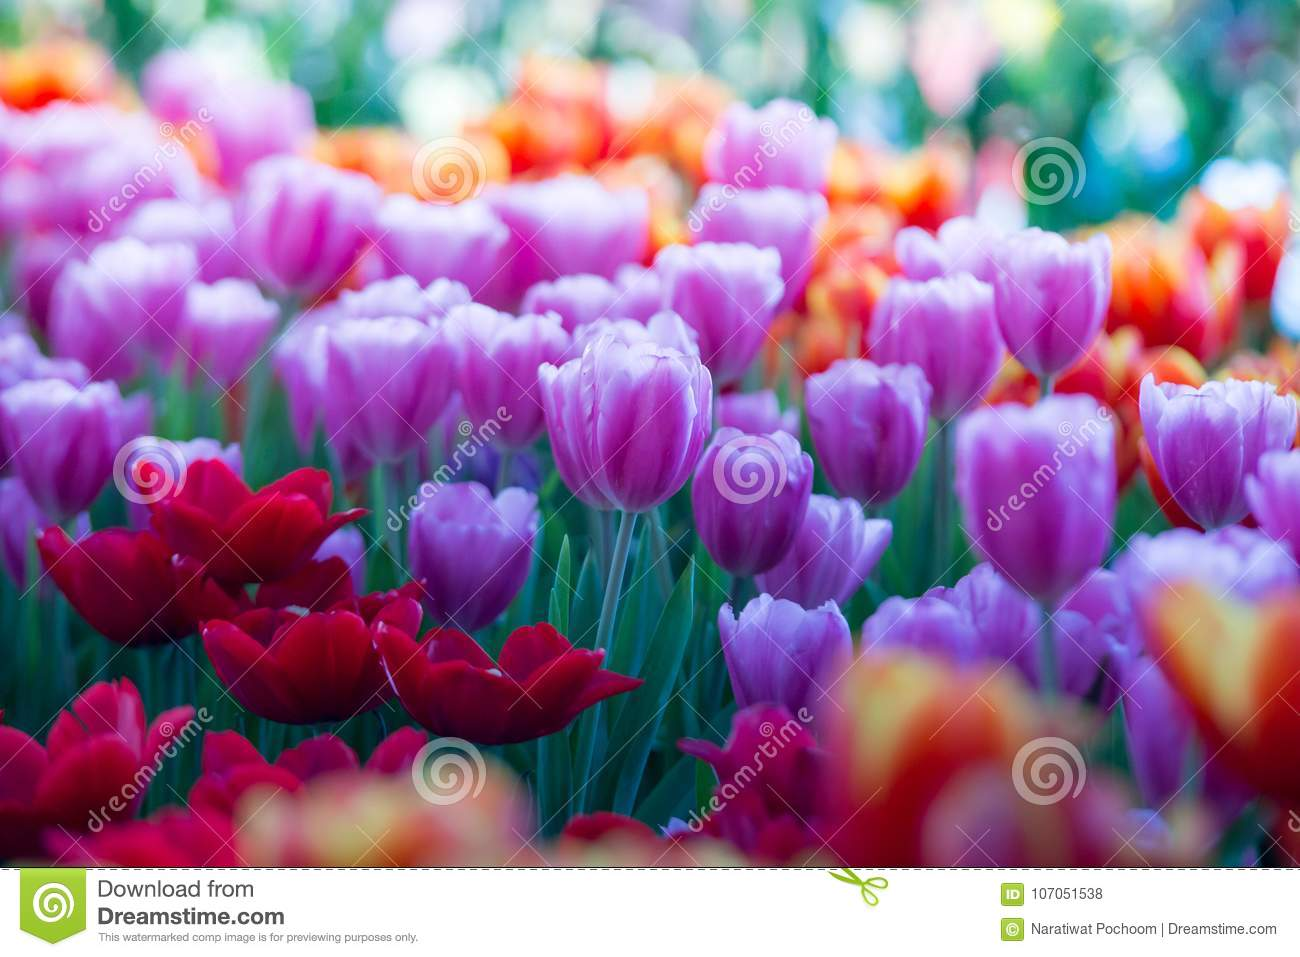 Tulips Flowers Beautiful Bouquet Of Tulips Colorful Flowers Background Wallpaper Stock Photo Image Of Outdoor Flower 107051538